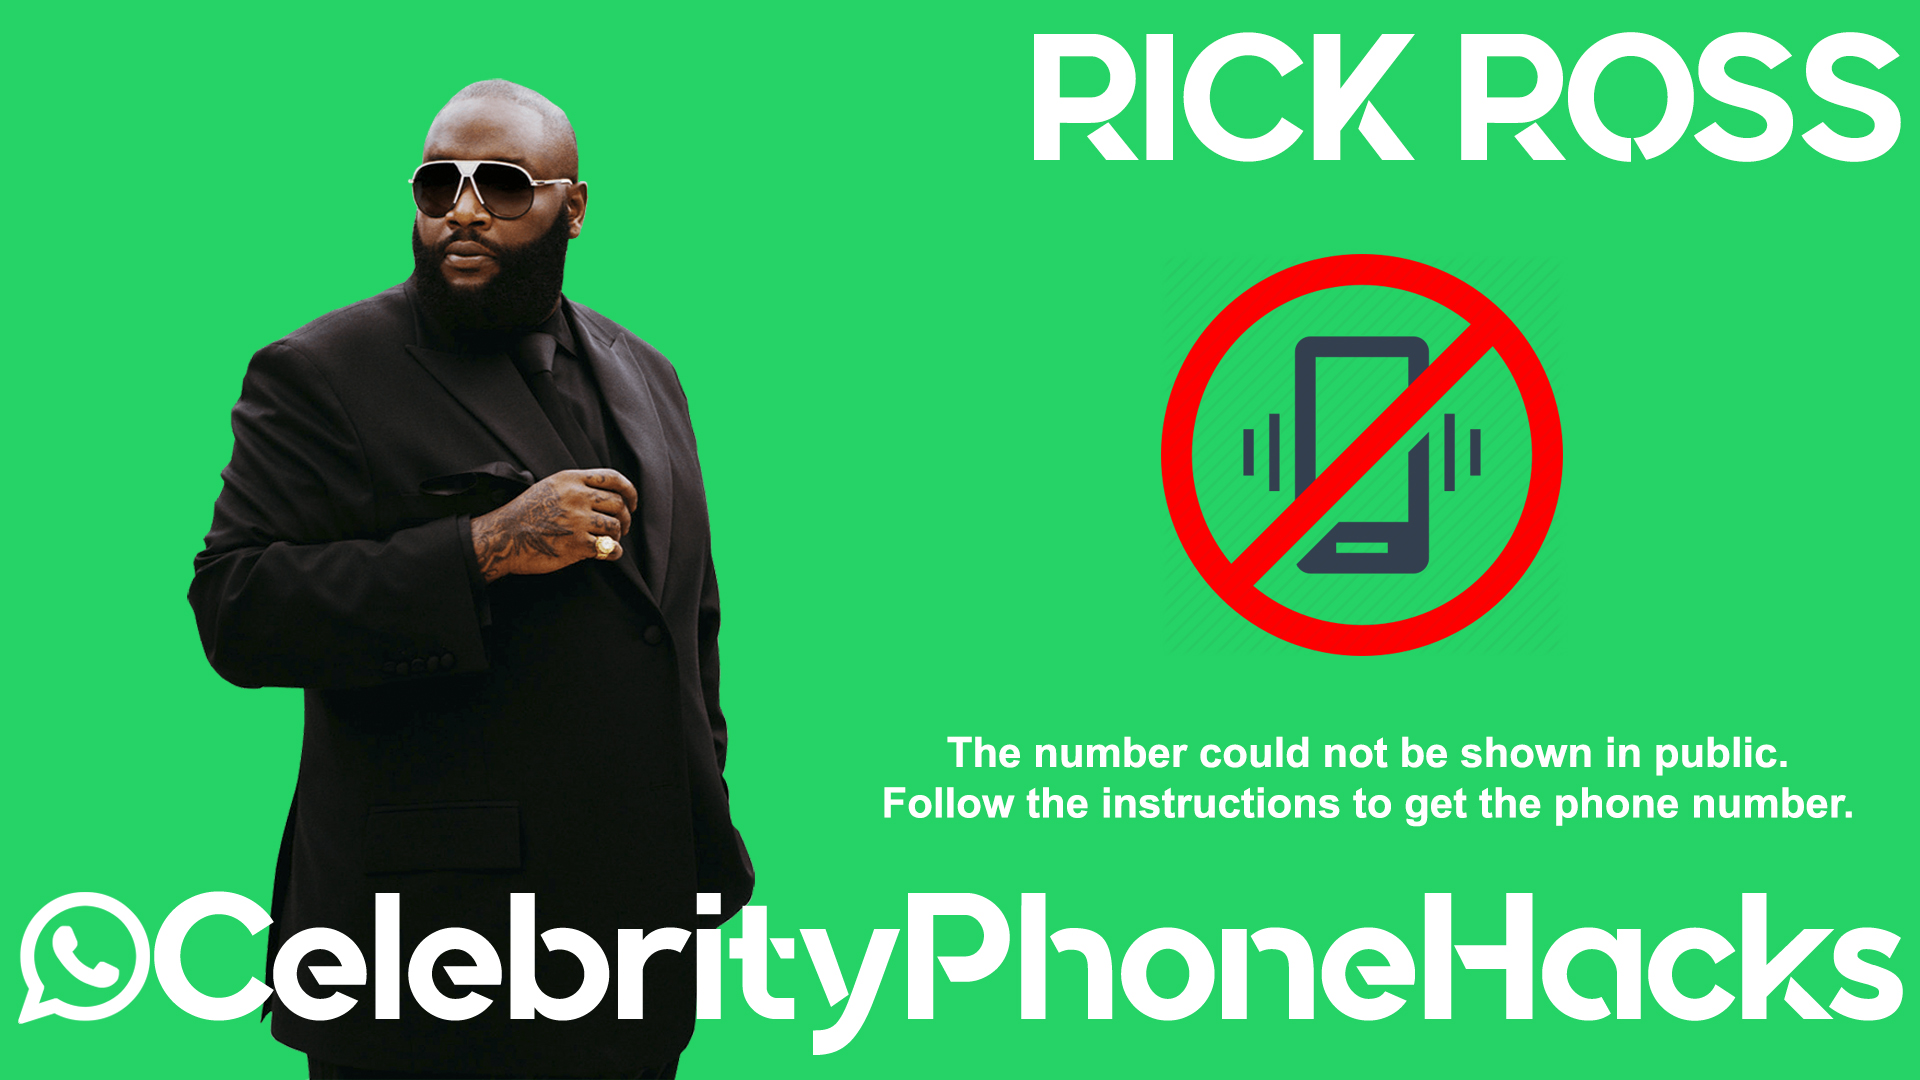 Rick Ross real phone number 2019 whatsapp hacked leaked